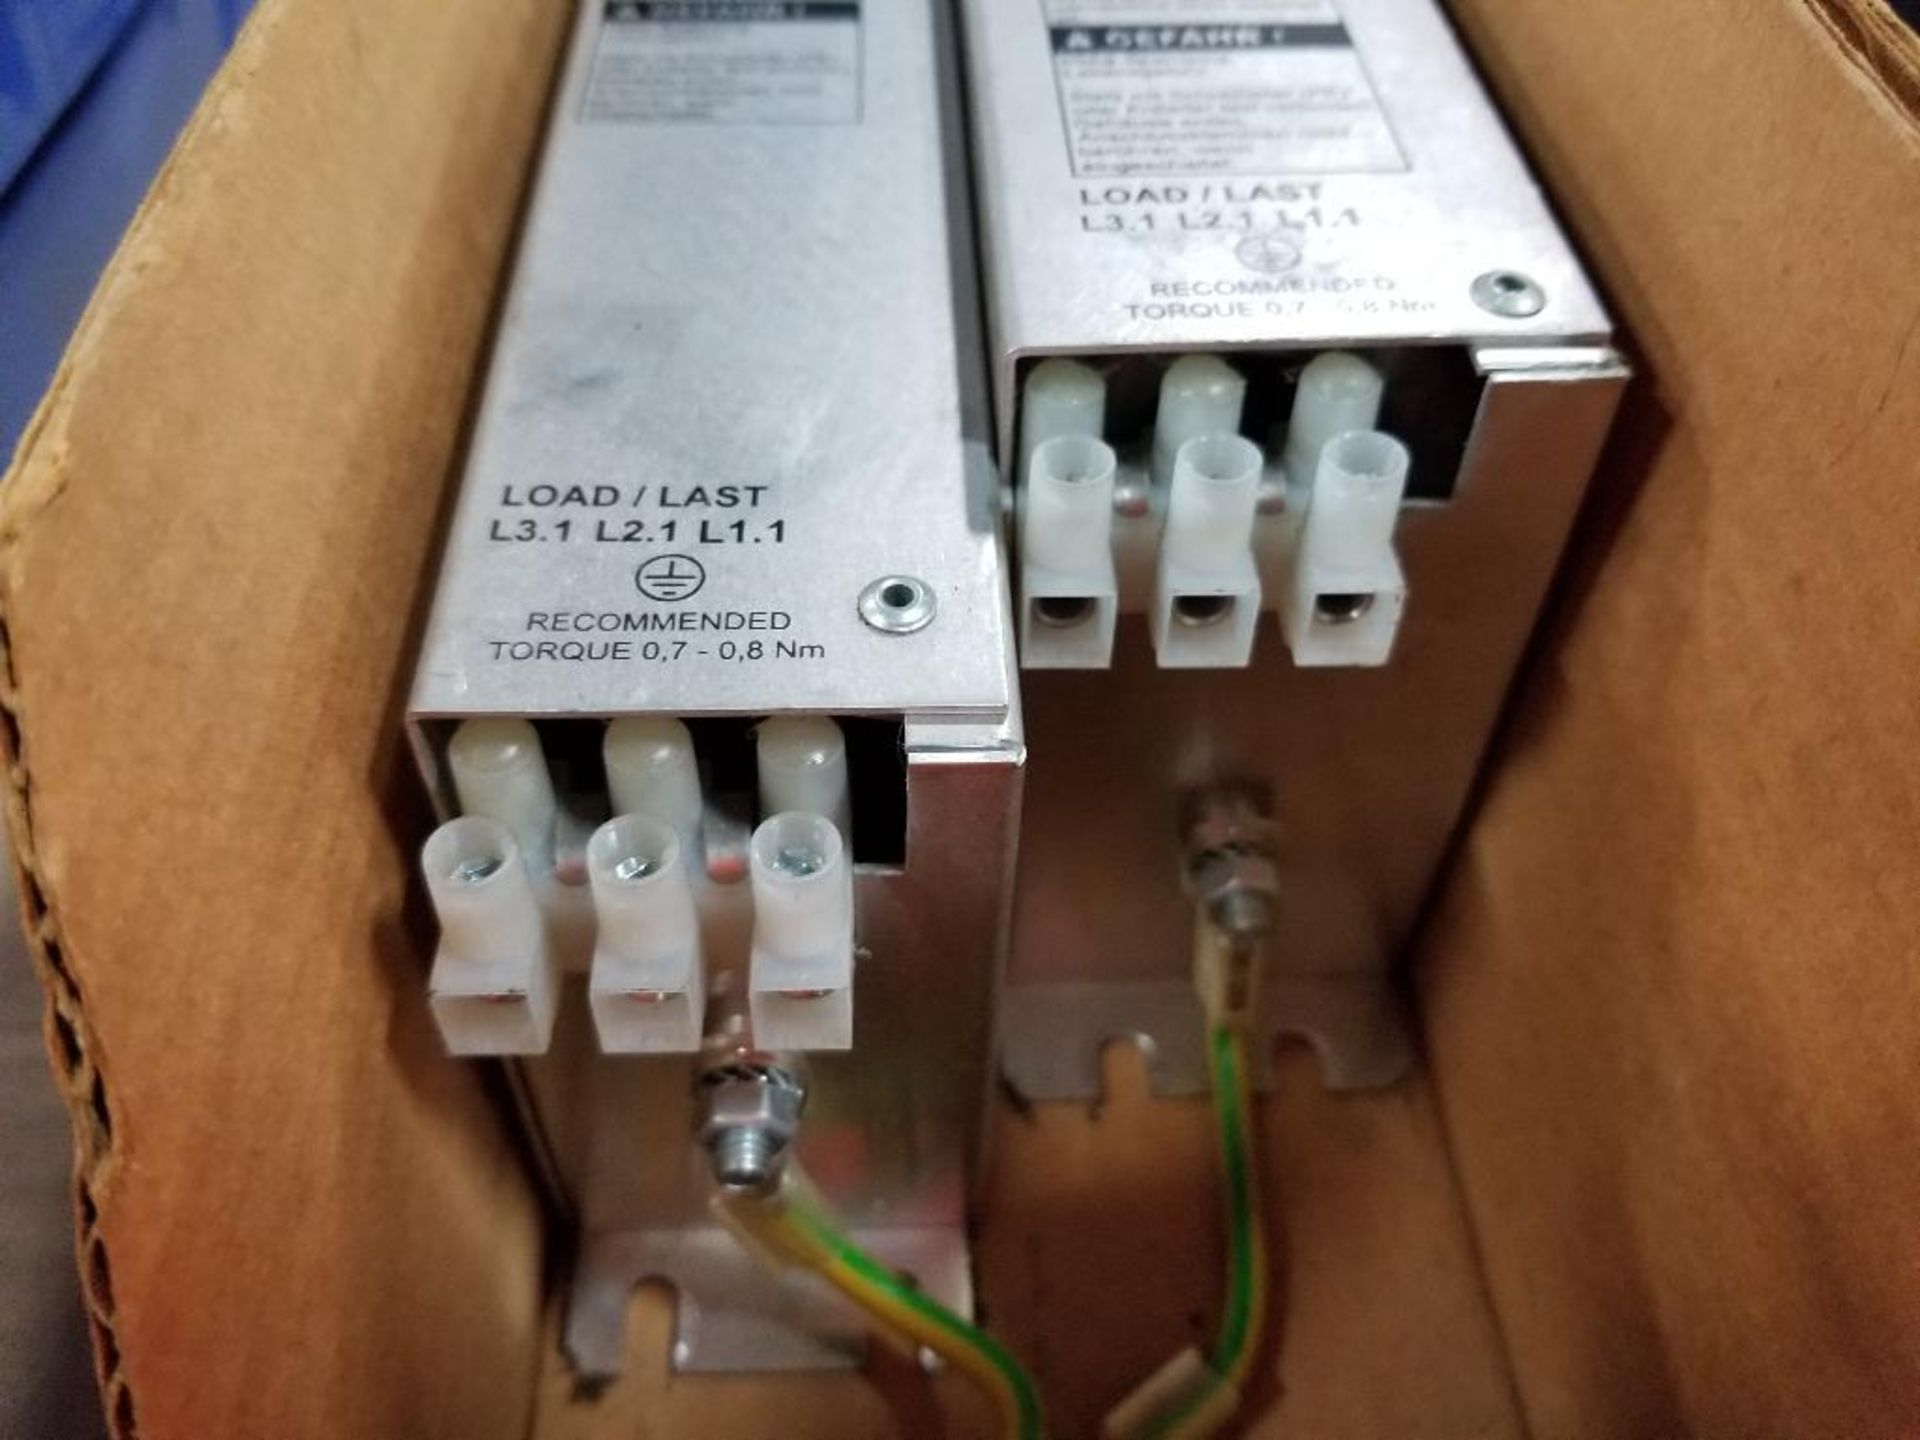 Qty 2 - Assorted Rexroth Line filter. NFD03.1-480-007, NFD03.1-480-016. - Image 5 of 5